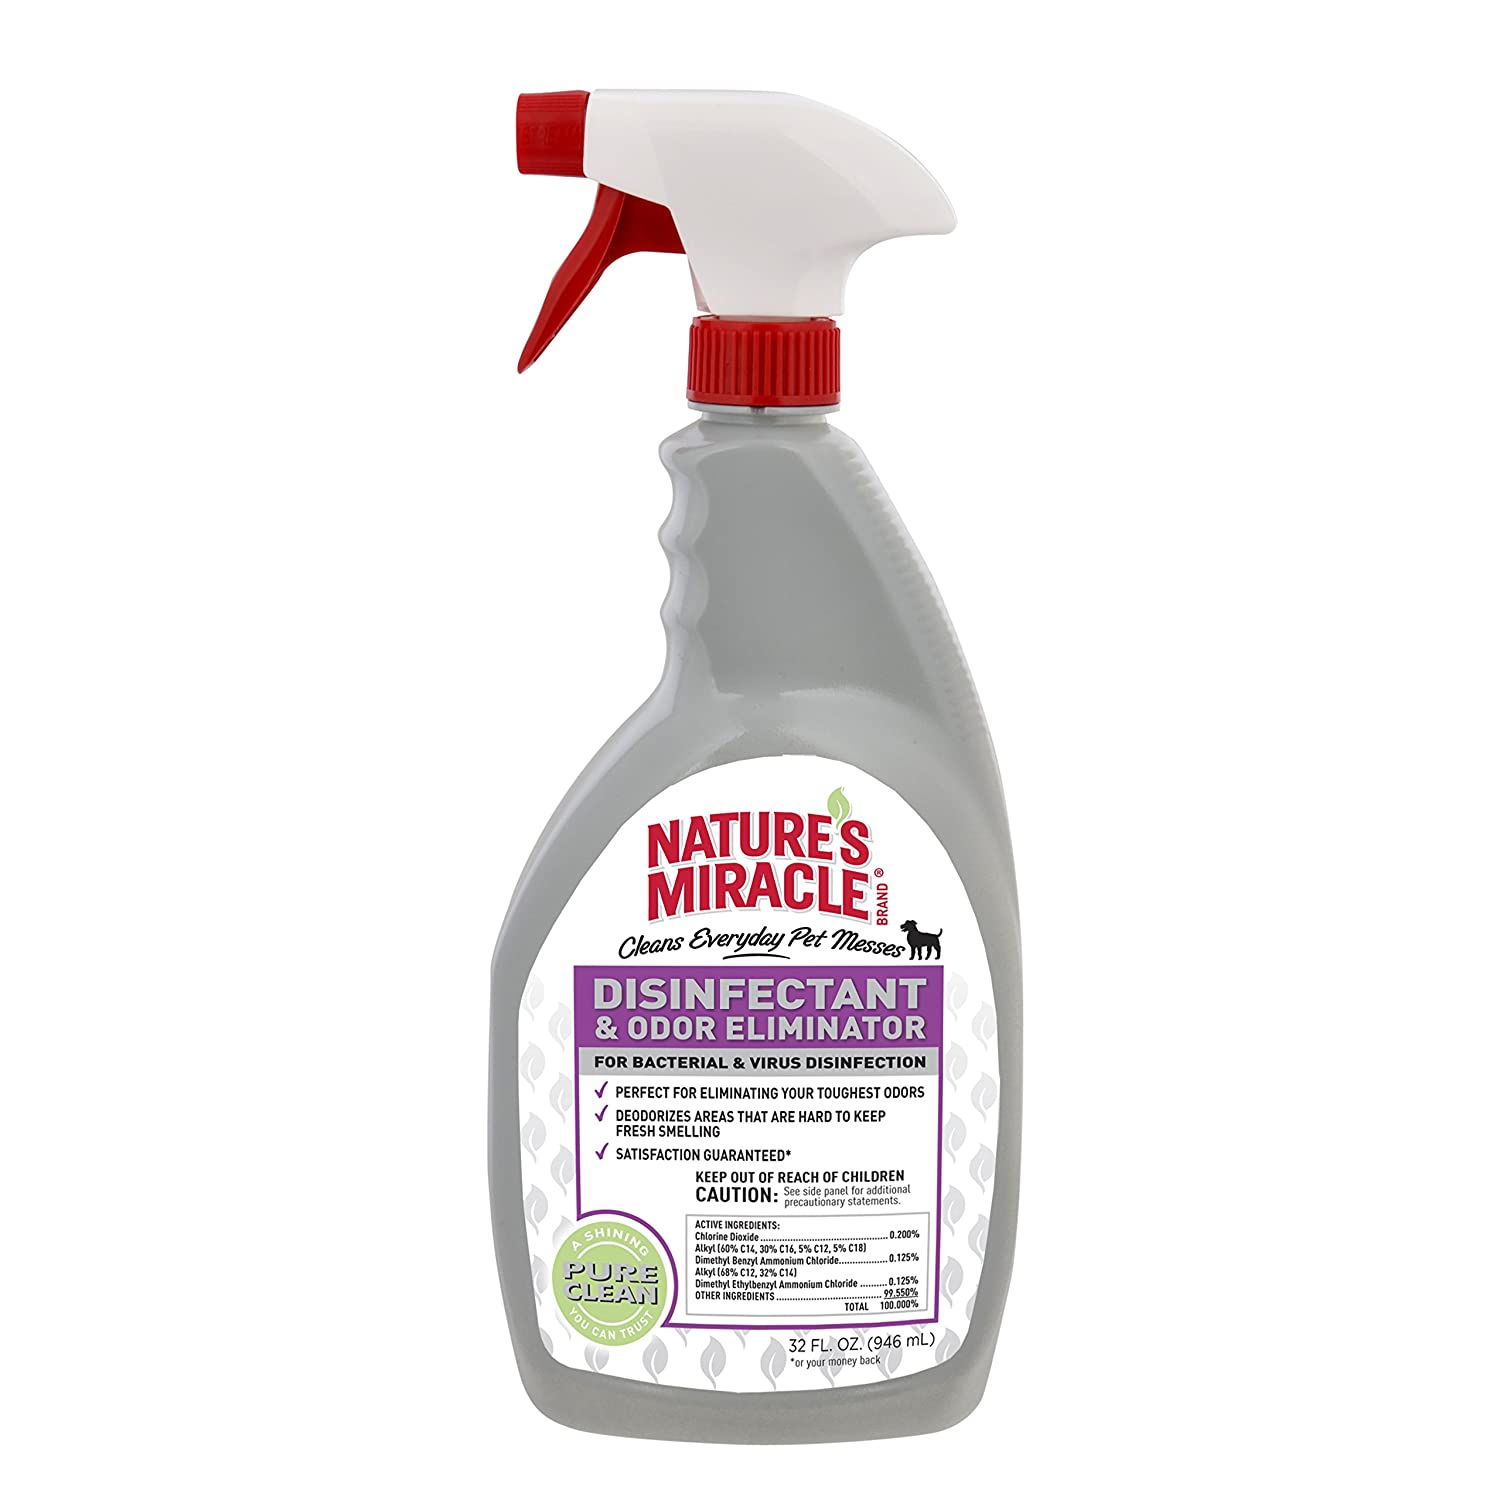 Nature's Miracle NM-5478 Brand Disinfectant Odor Eliminator 32 oz